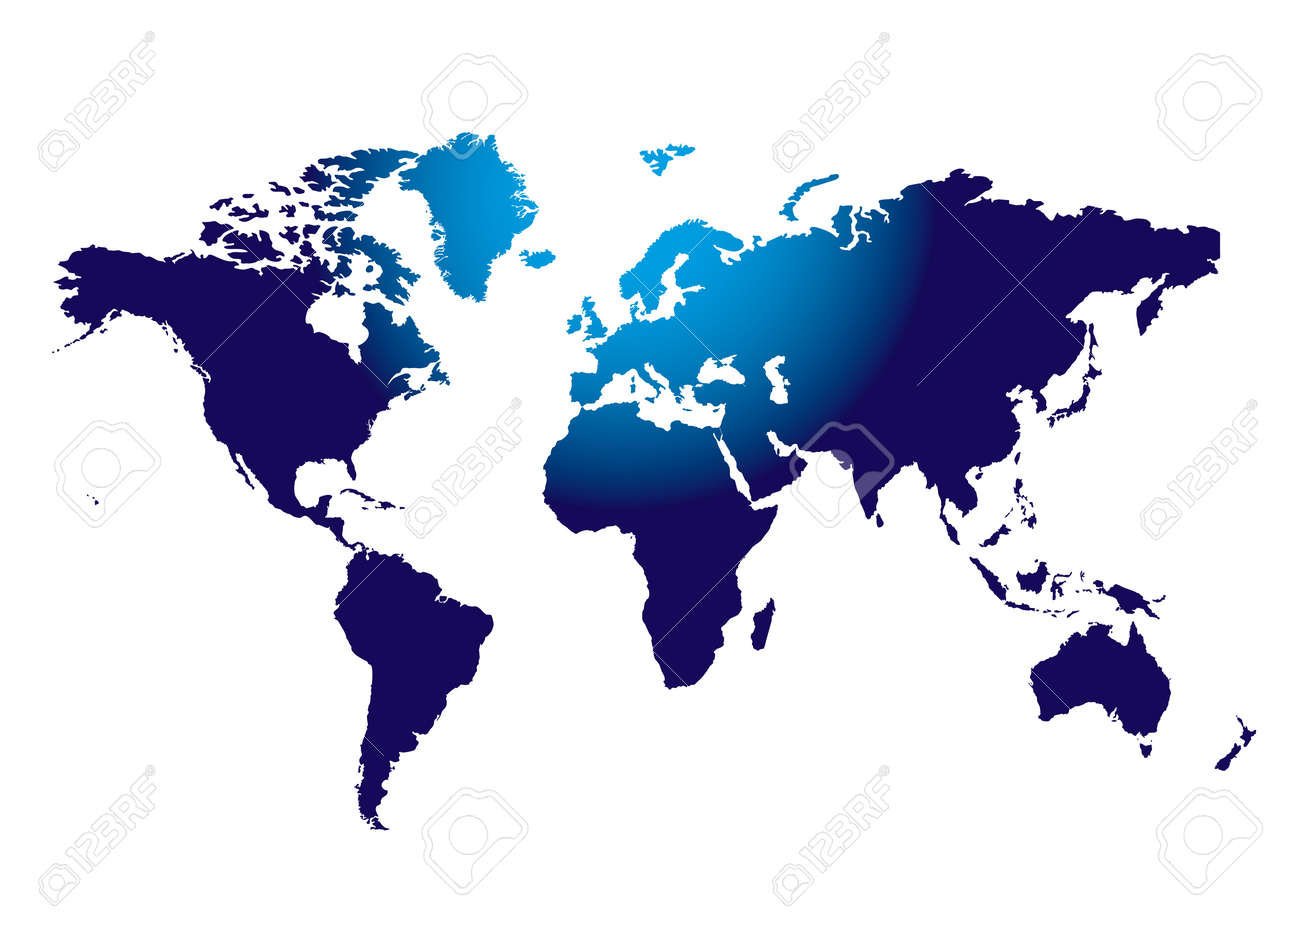 outline of the world mass in blue with light shining on the top section Stock Vector - 5603058